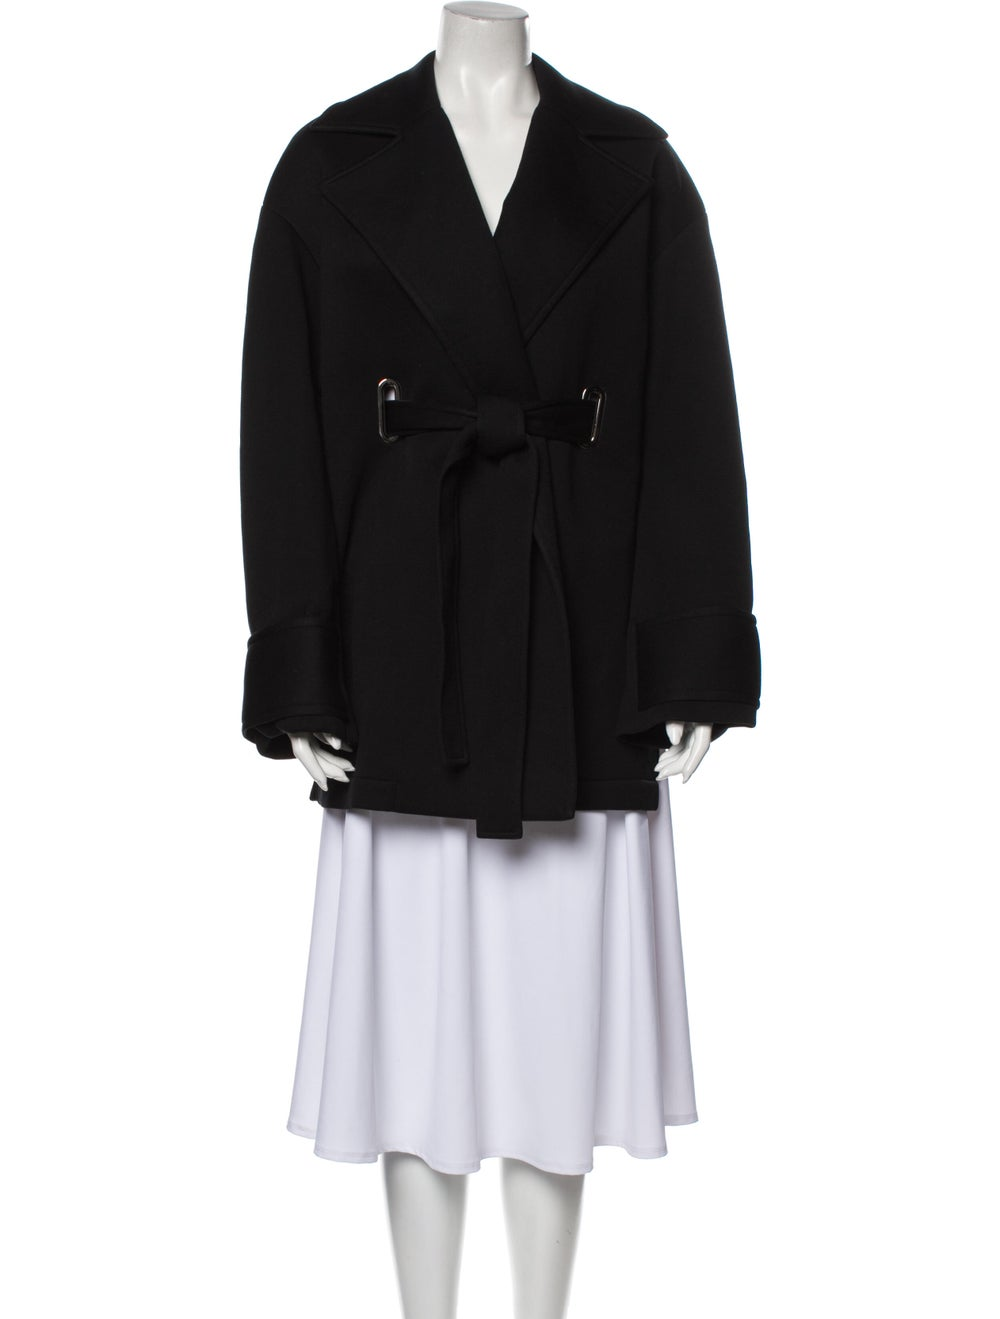 Beaufille Trench Coat Black - image 1